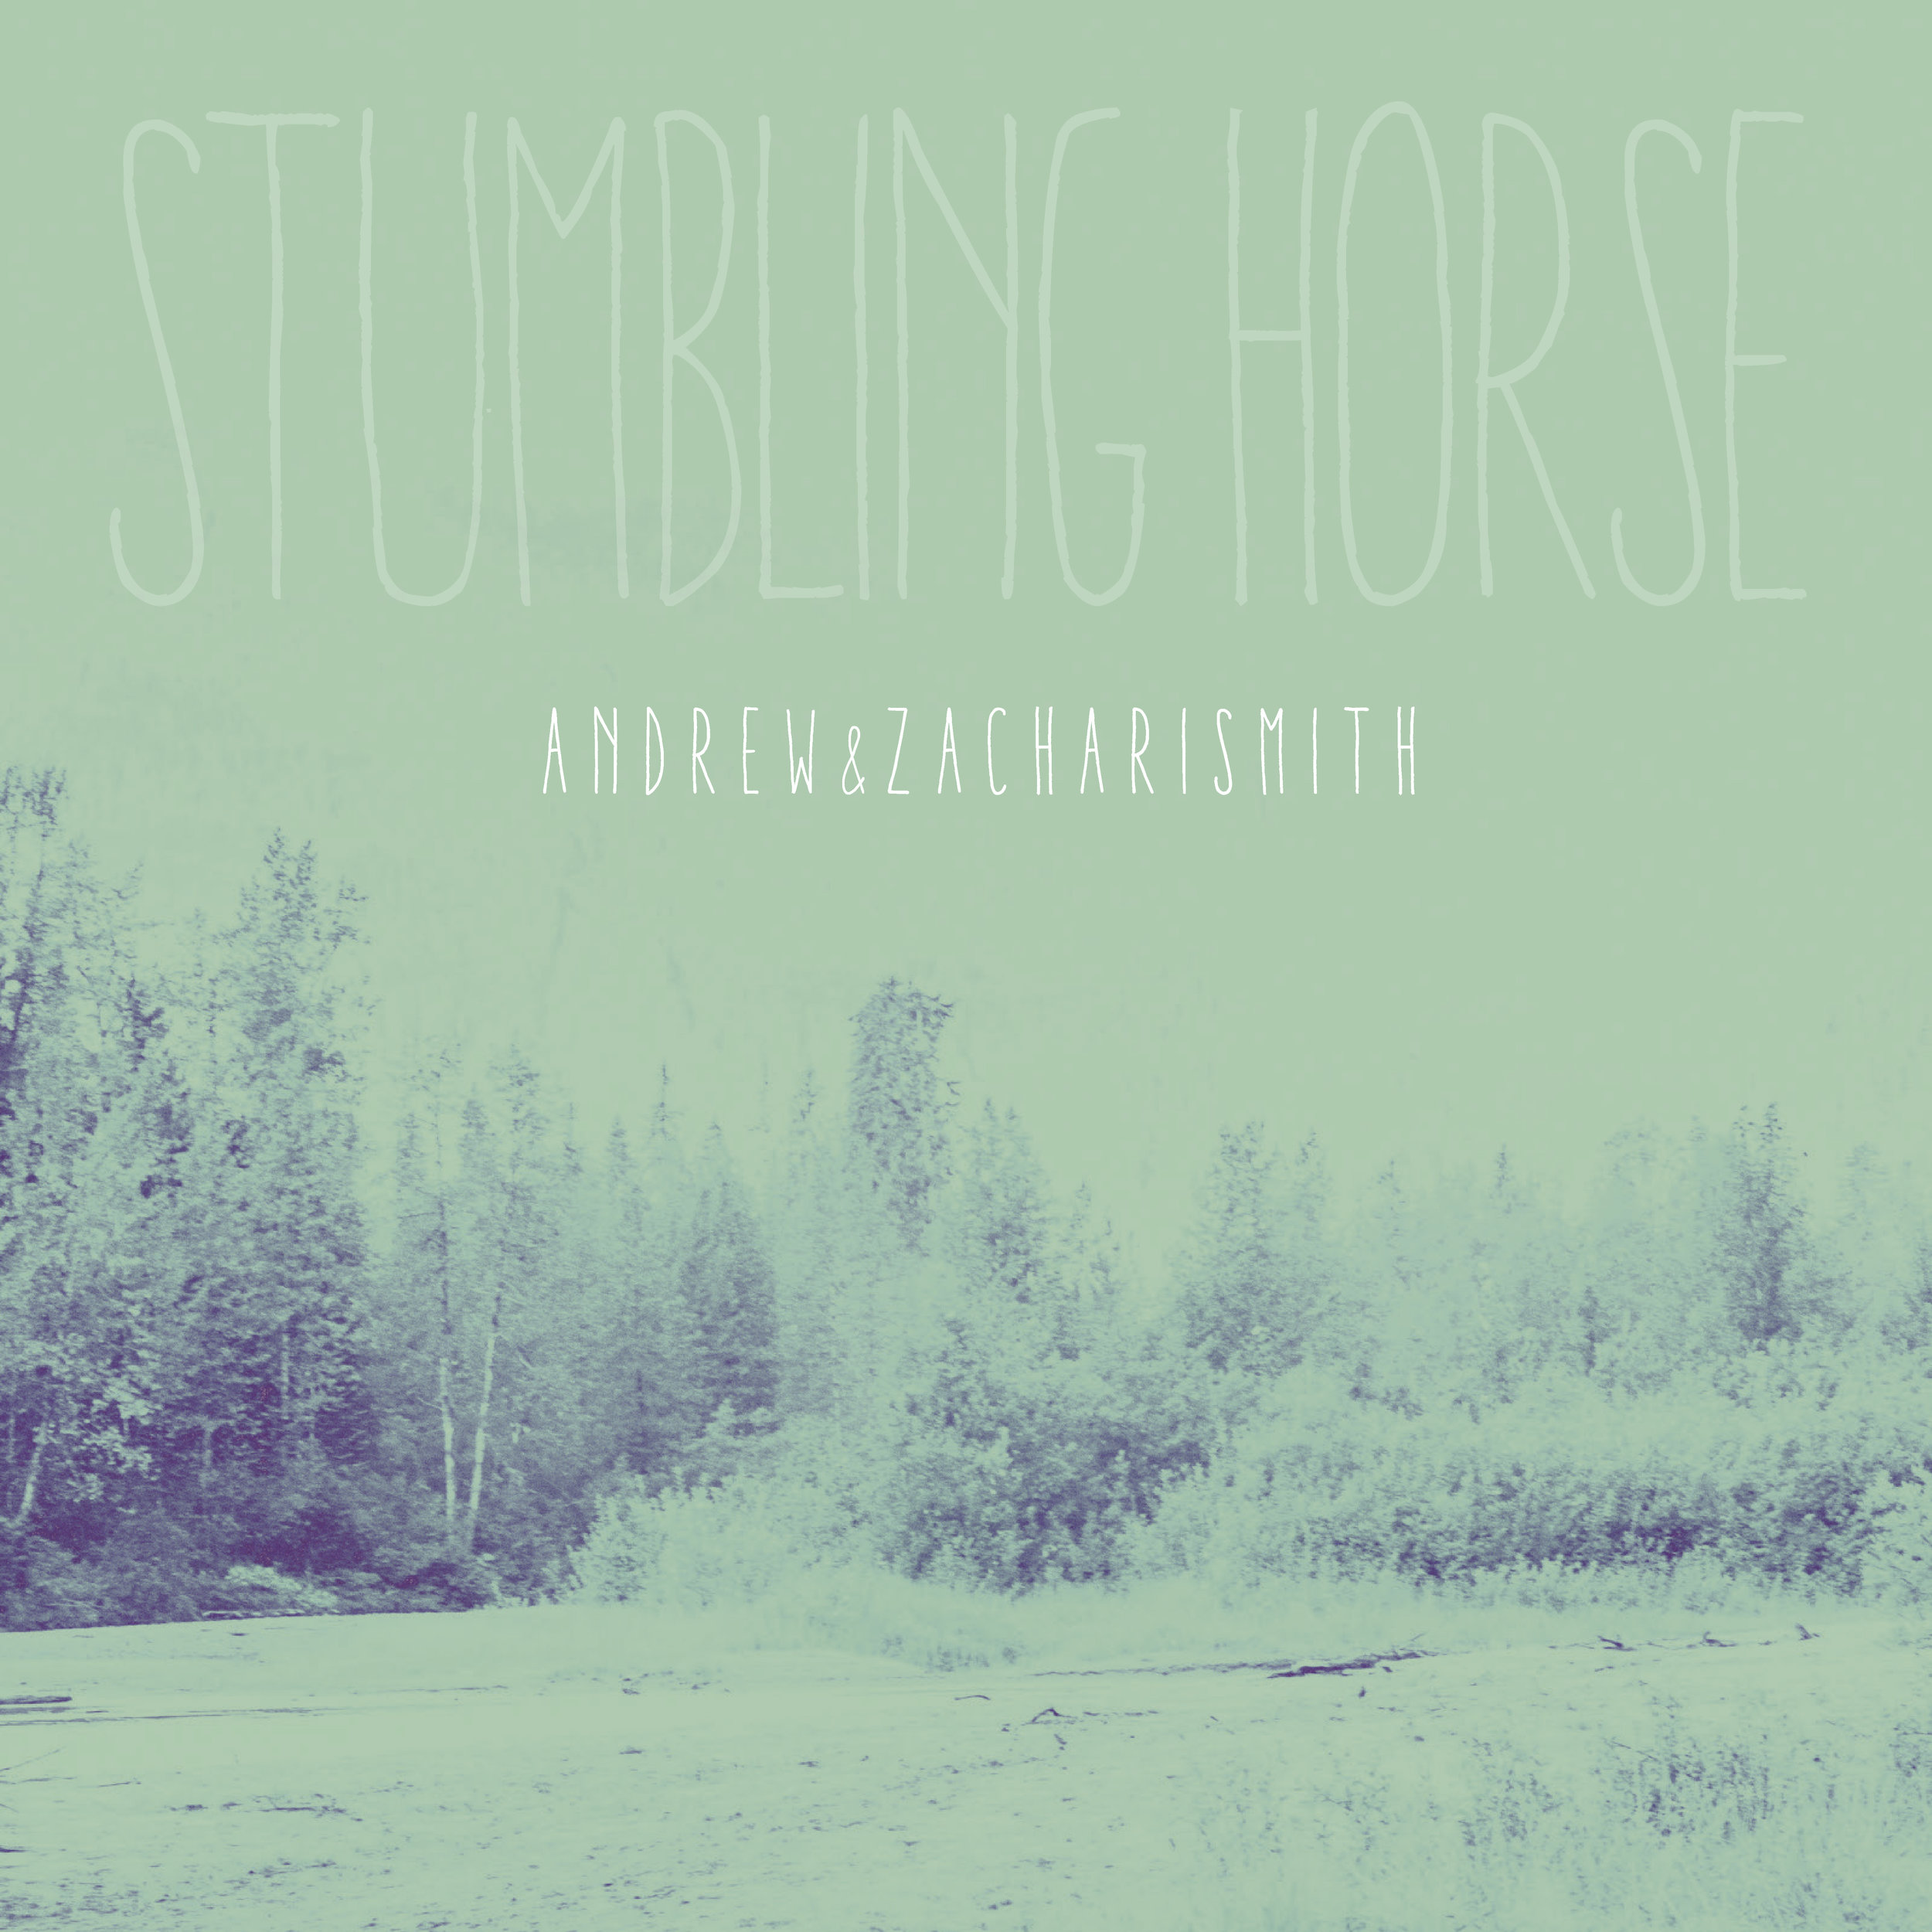 Stumbling Horse Cover (Square Hi Res)-01.jpg